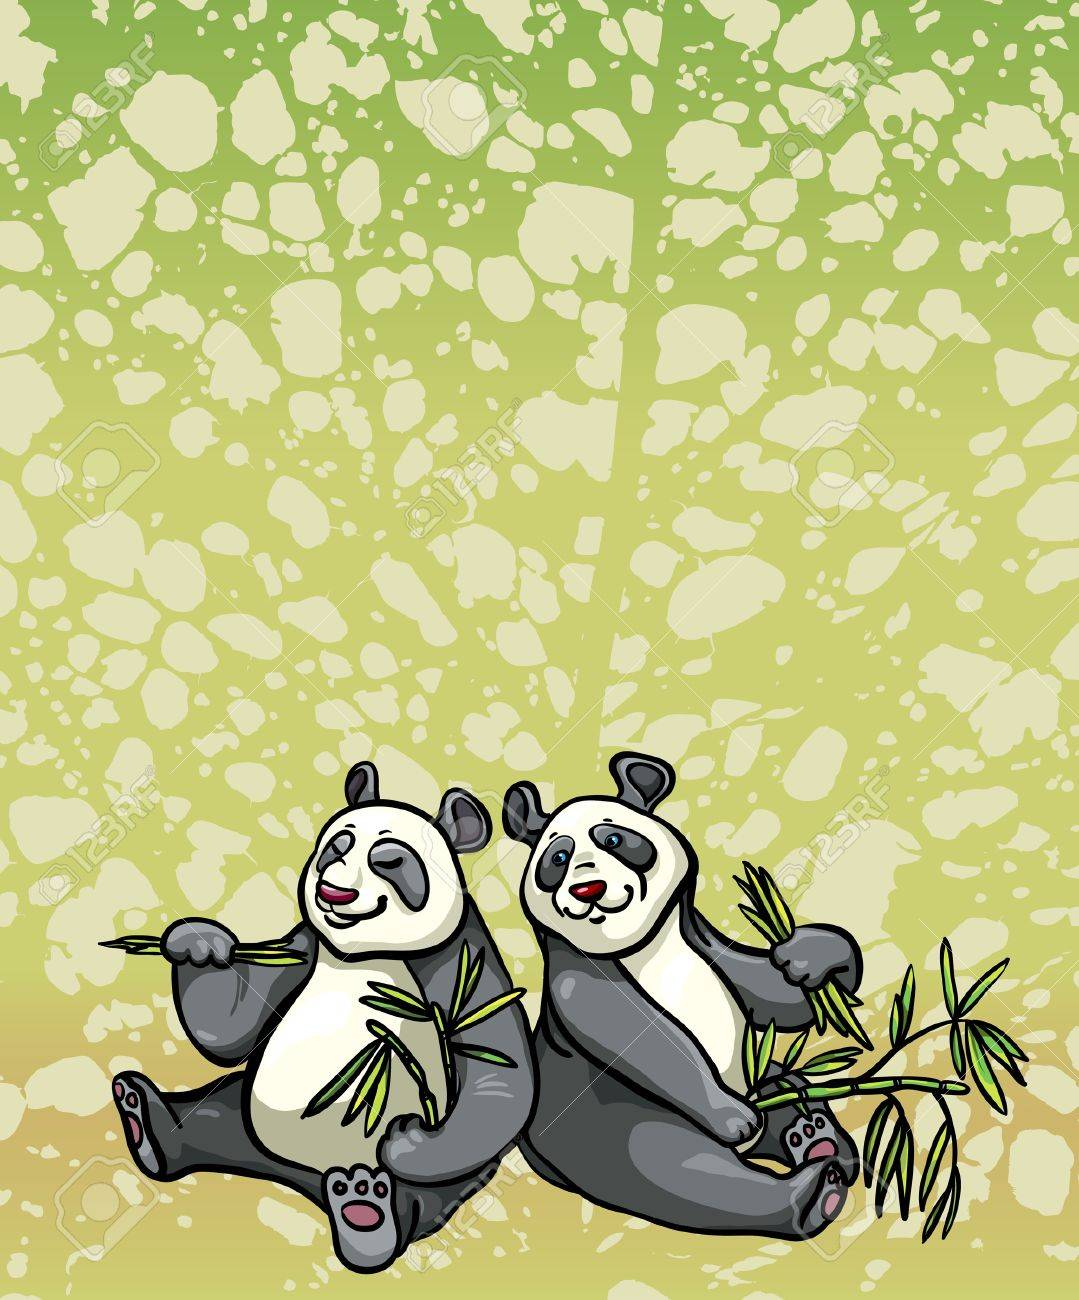 Two cartoon funny pandas are sitting and eating bamboo leaves on a green abstract background Stock Vector - 18088081